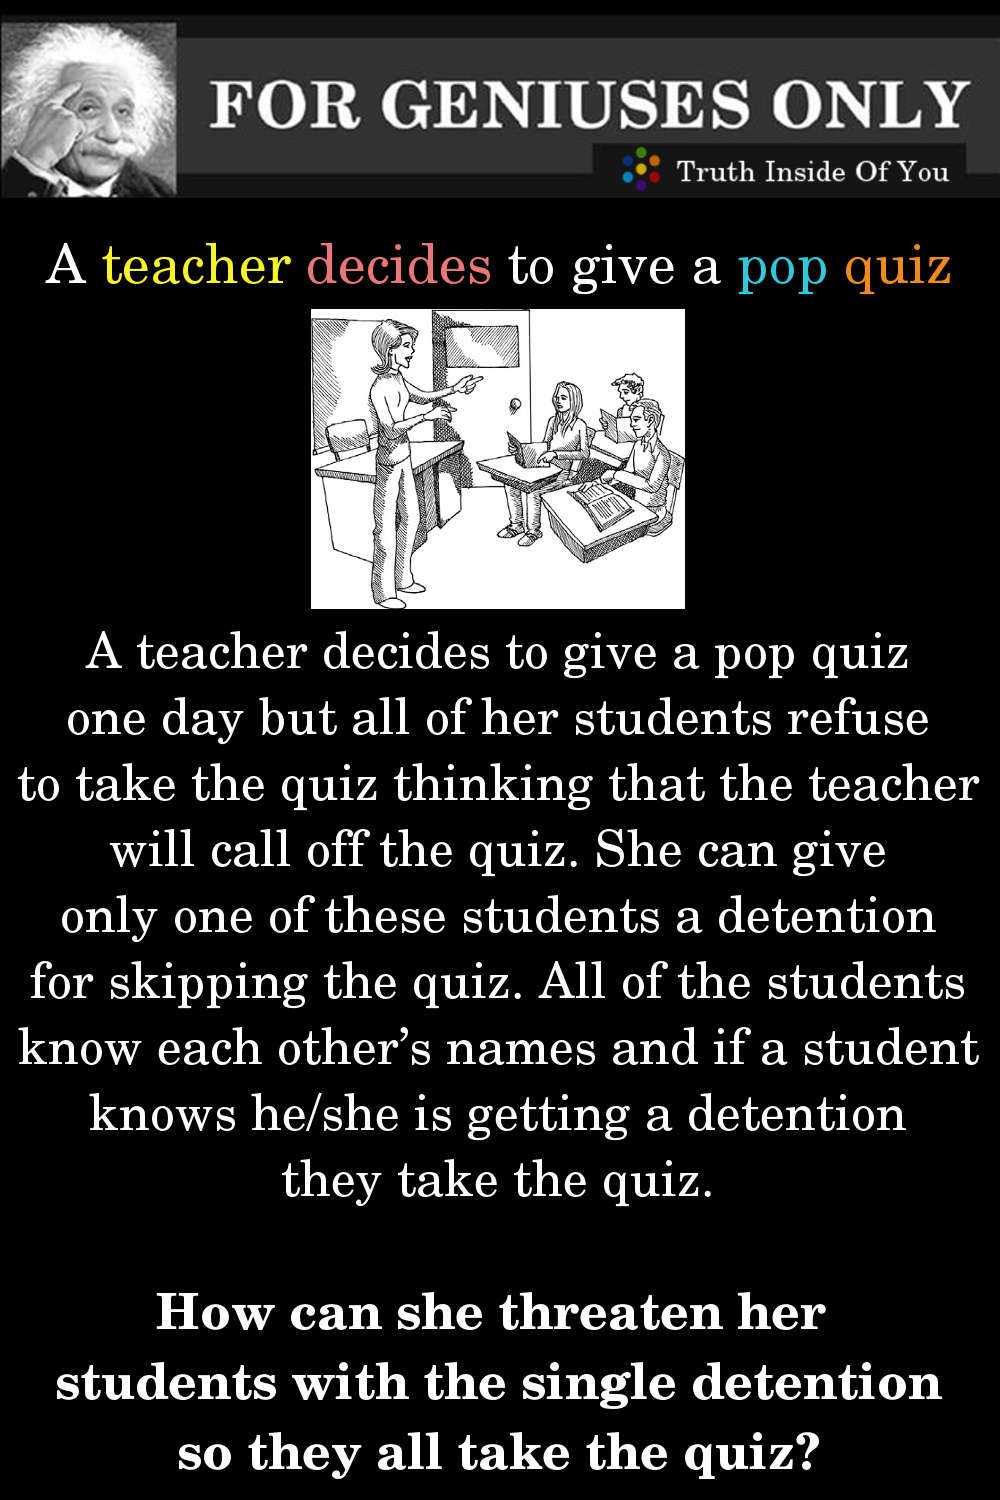 Riddle: A teacher decides to give a pop quiz